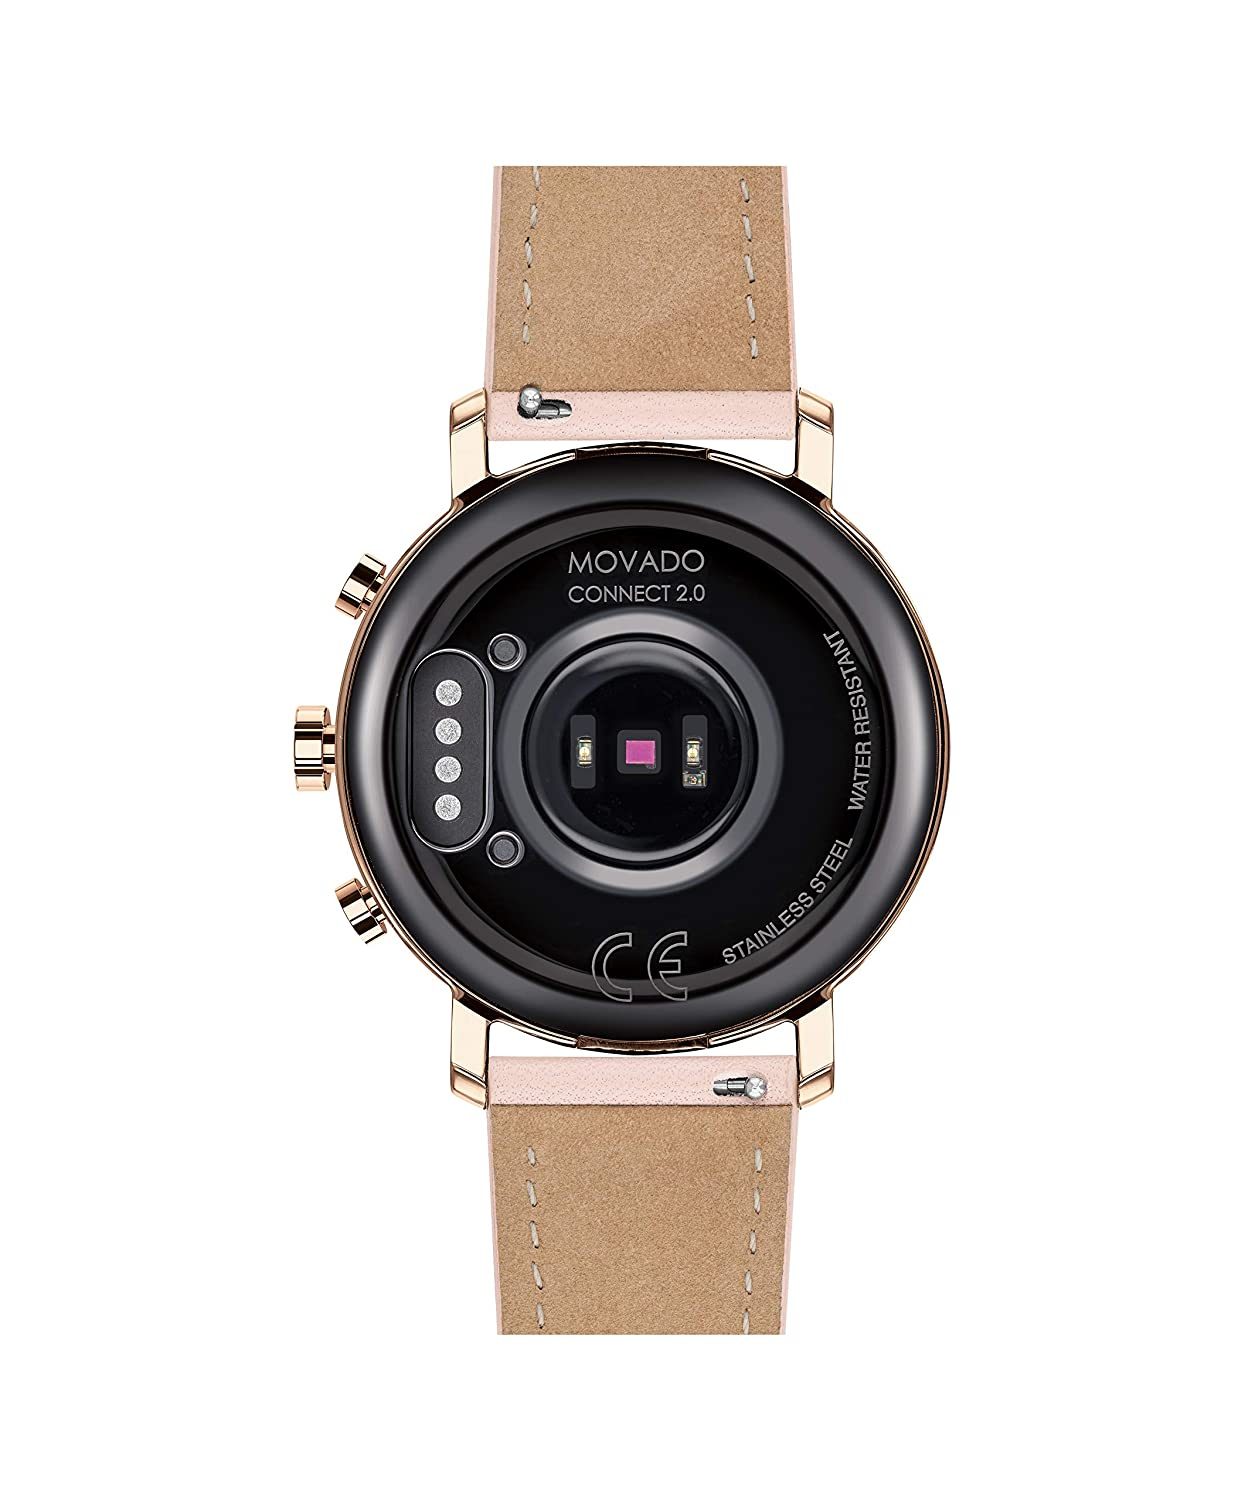 Movado Connect 2.0 Unisex Powered with Wear OS by Google Stainless Steel and Pink Leather Smartwatch, Color: Pink (Model: 3660023)